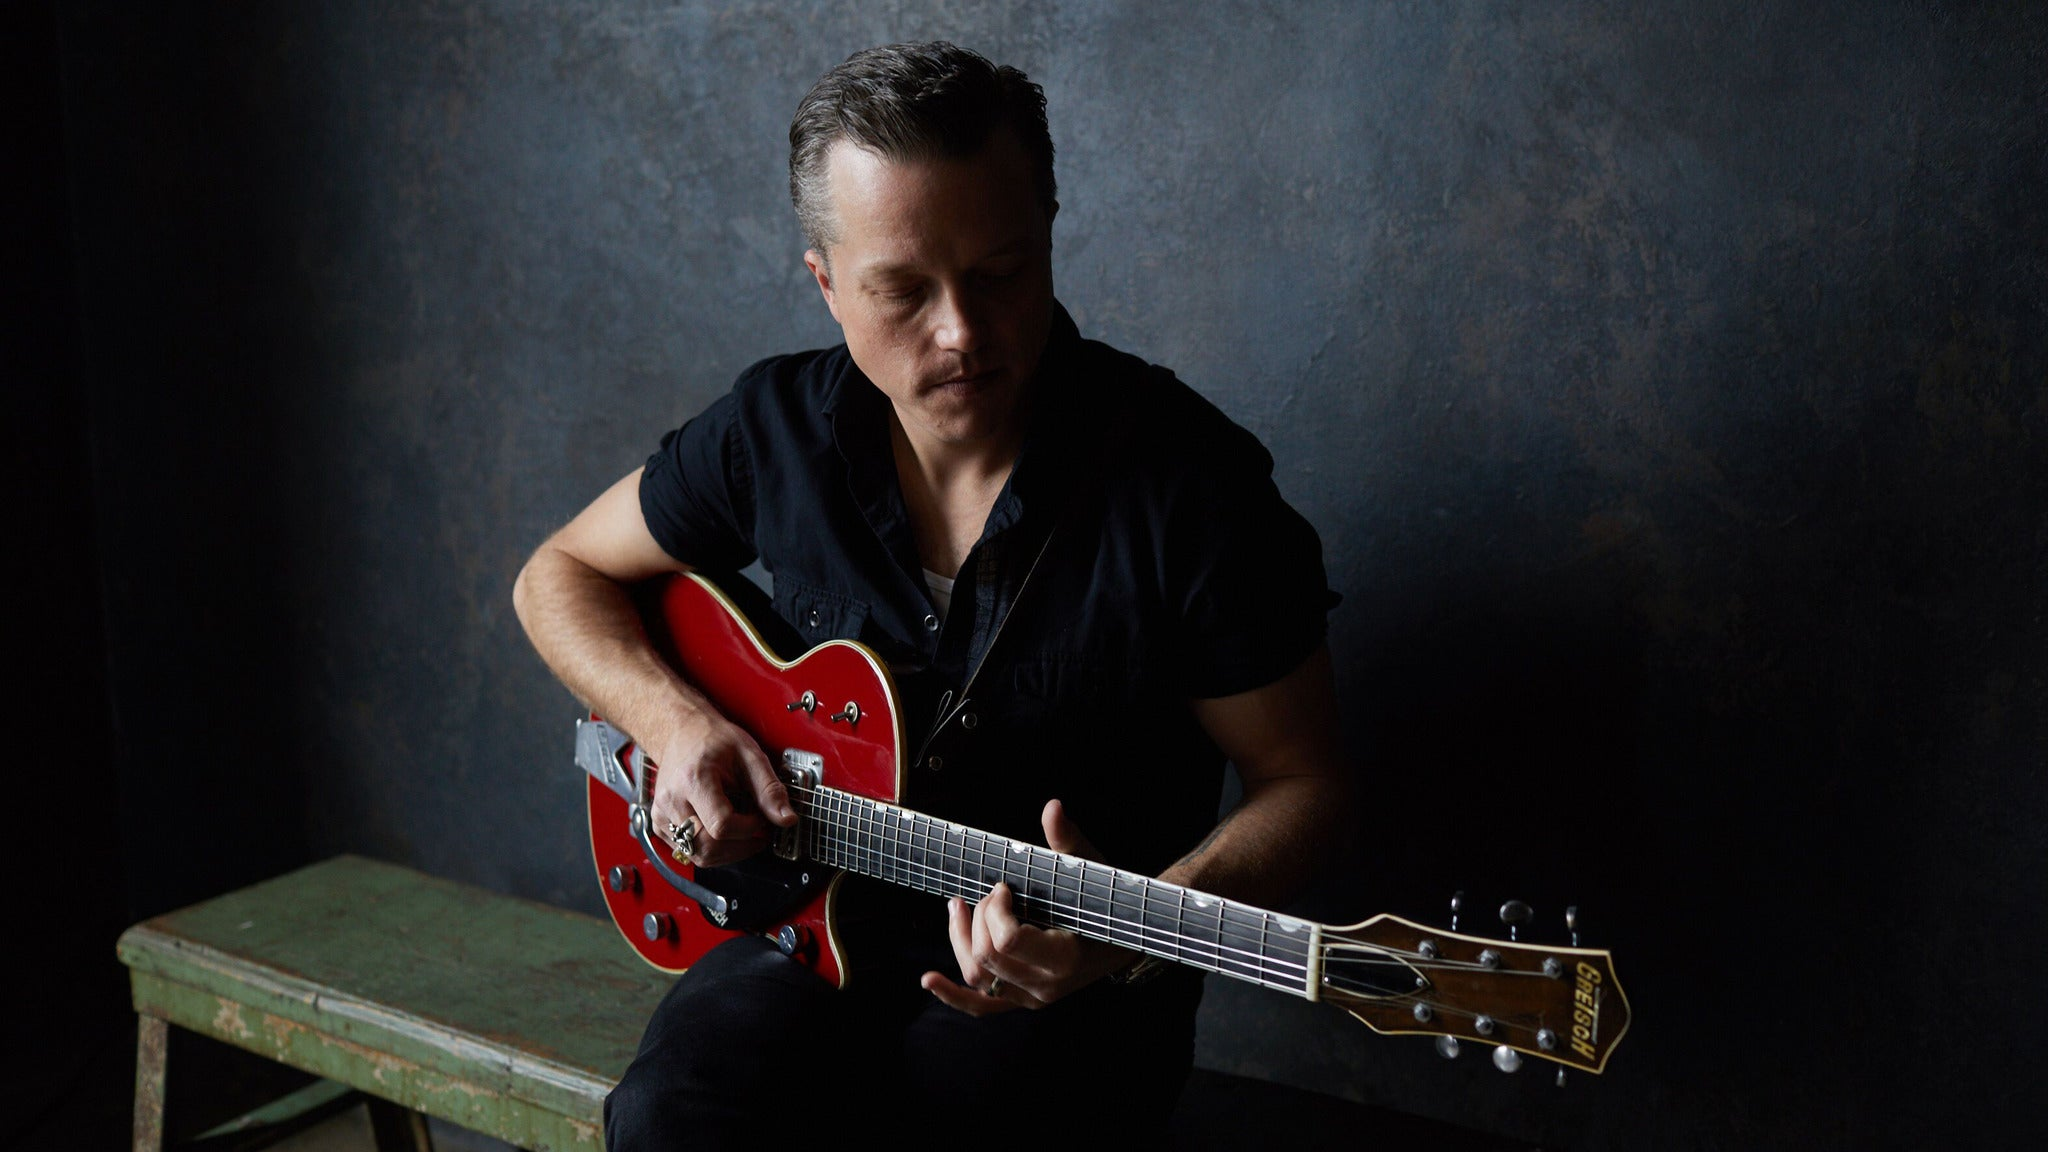 Jason Isbell w/ Strand of Oaks at The Rust Belt